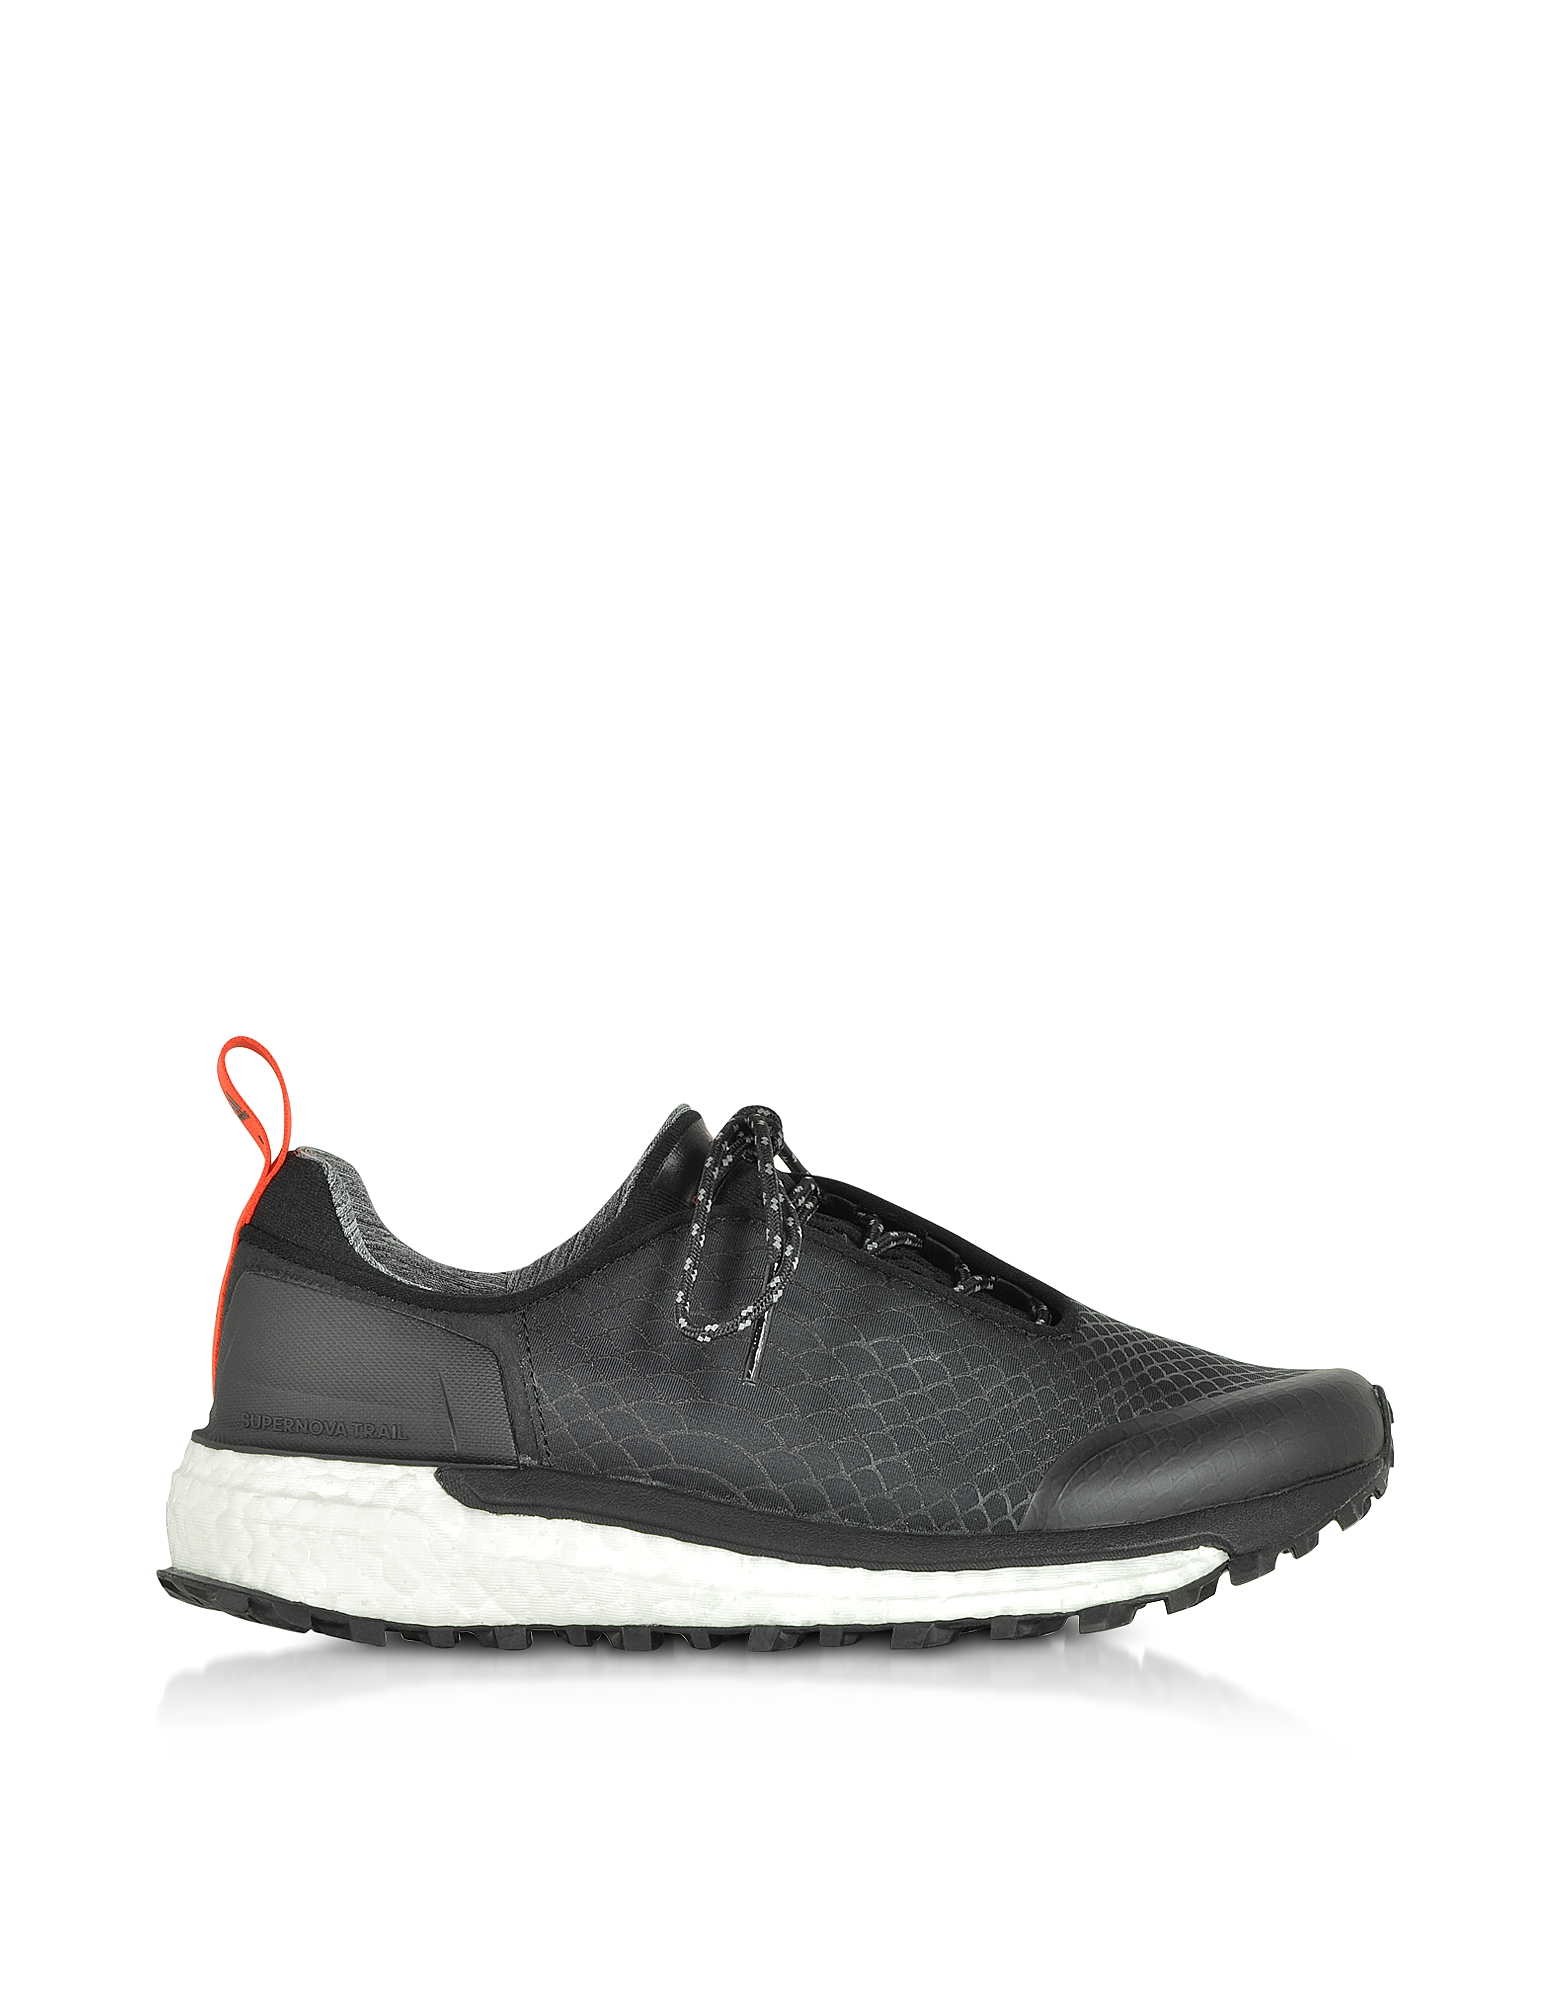 Adidas Stella McCartney Shoes, Black Supernova Trail Sneakers w/Asymmetrical Lace Closure